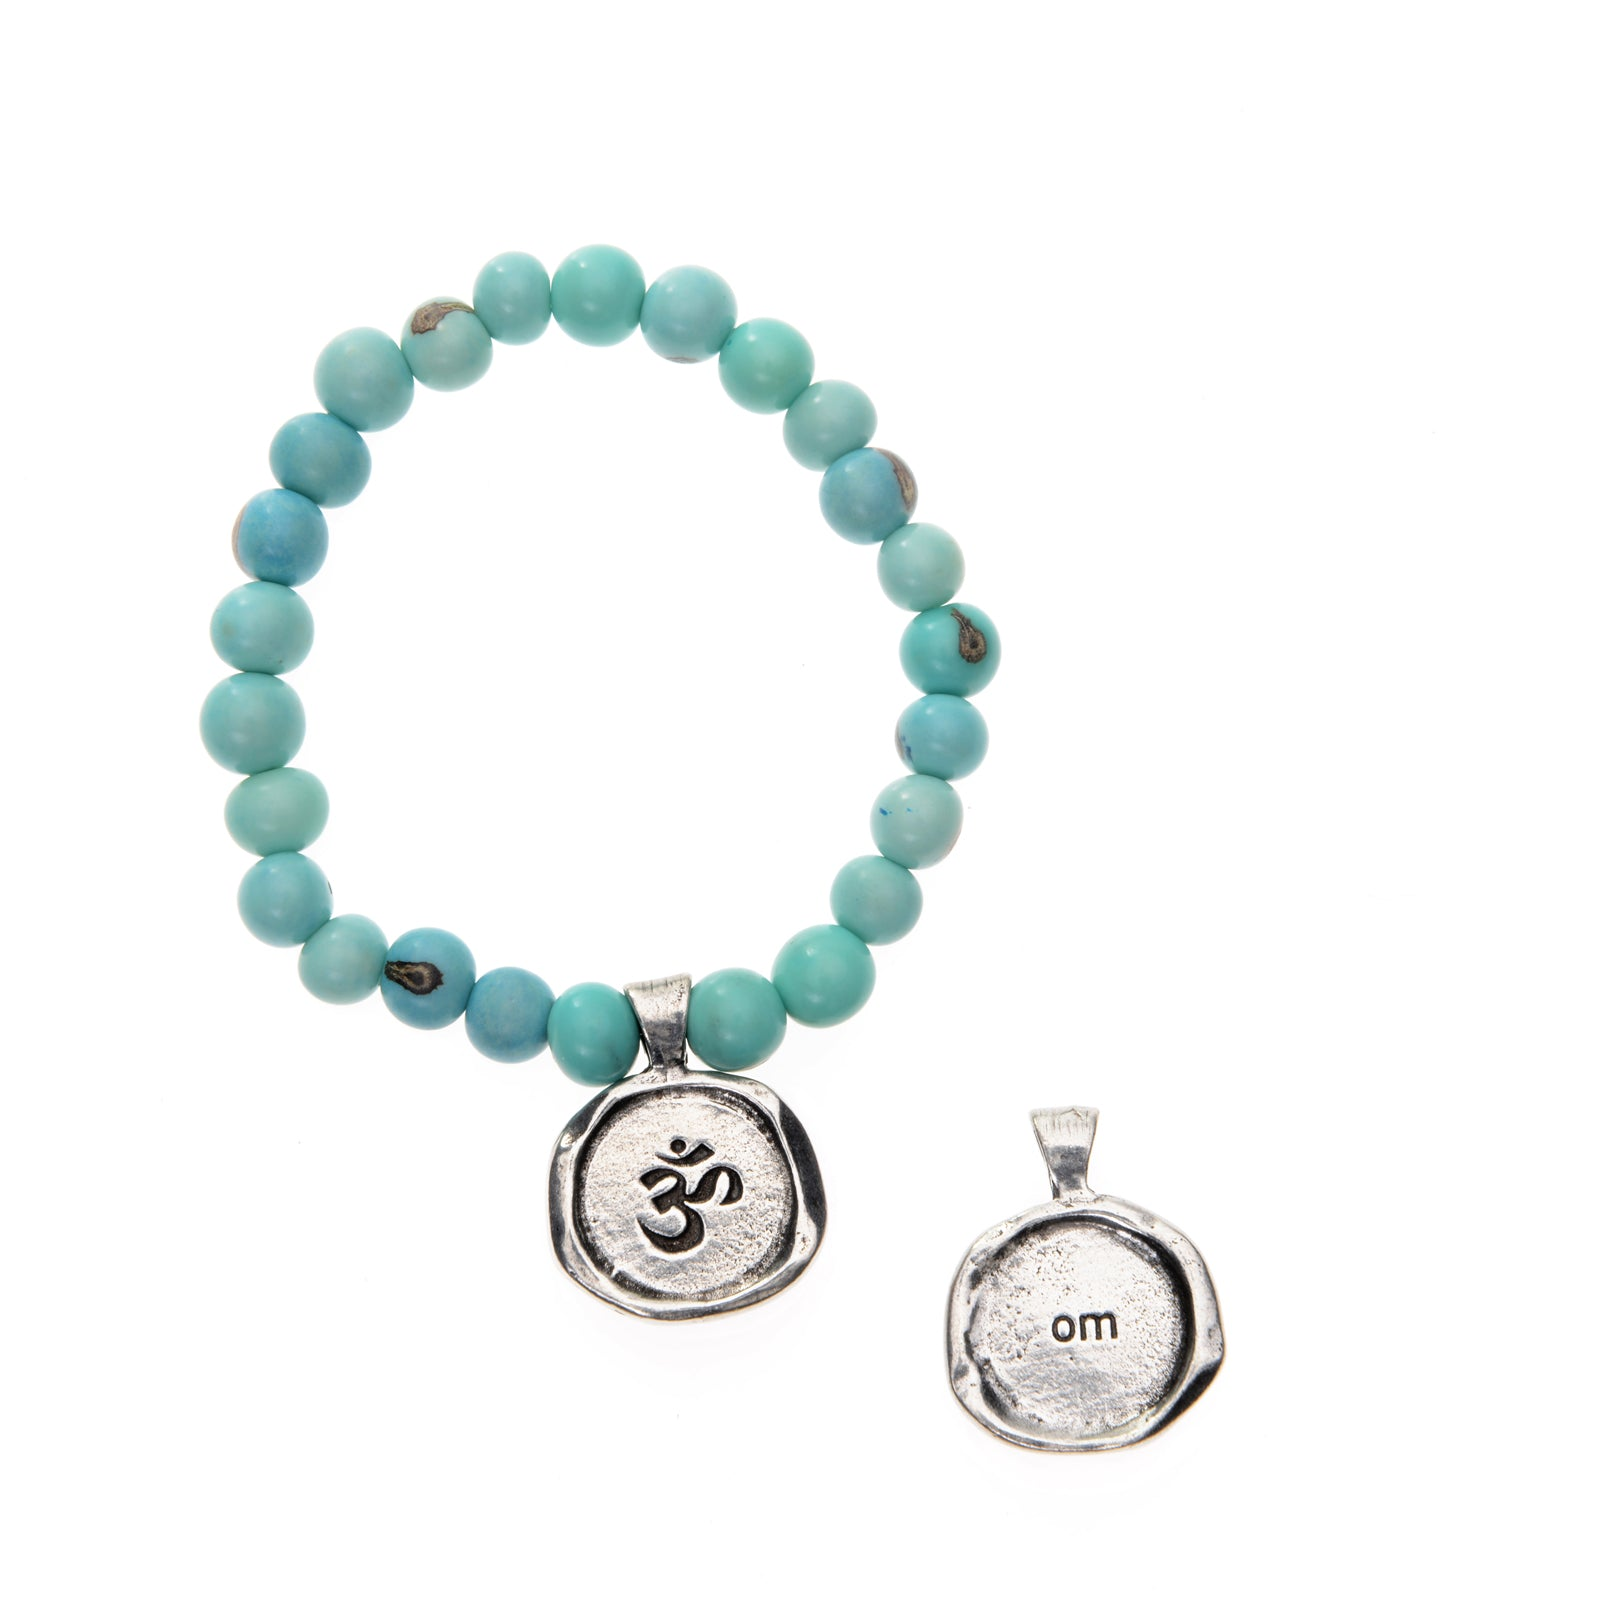 Turquoise Acai Seeds of Life Bracelet with Wax Seal